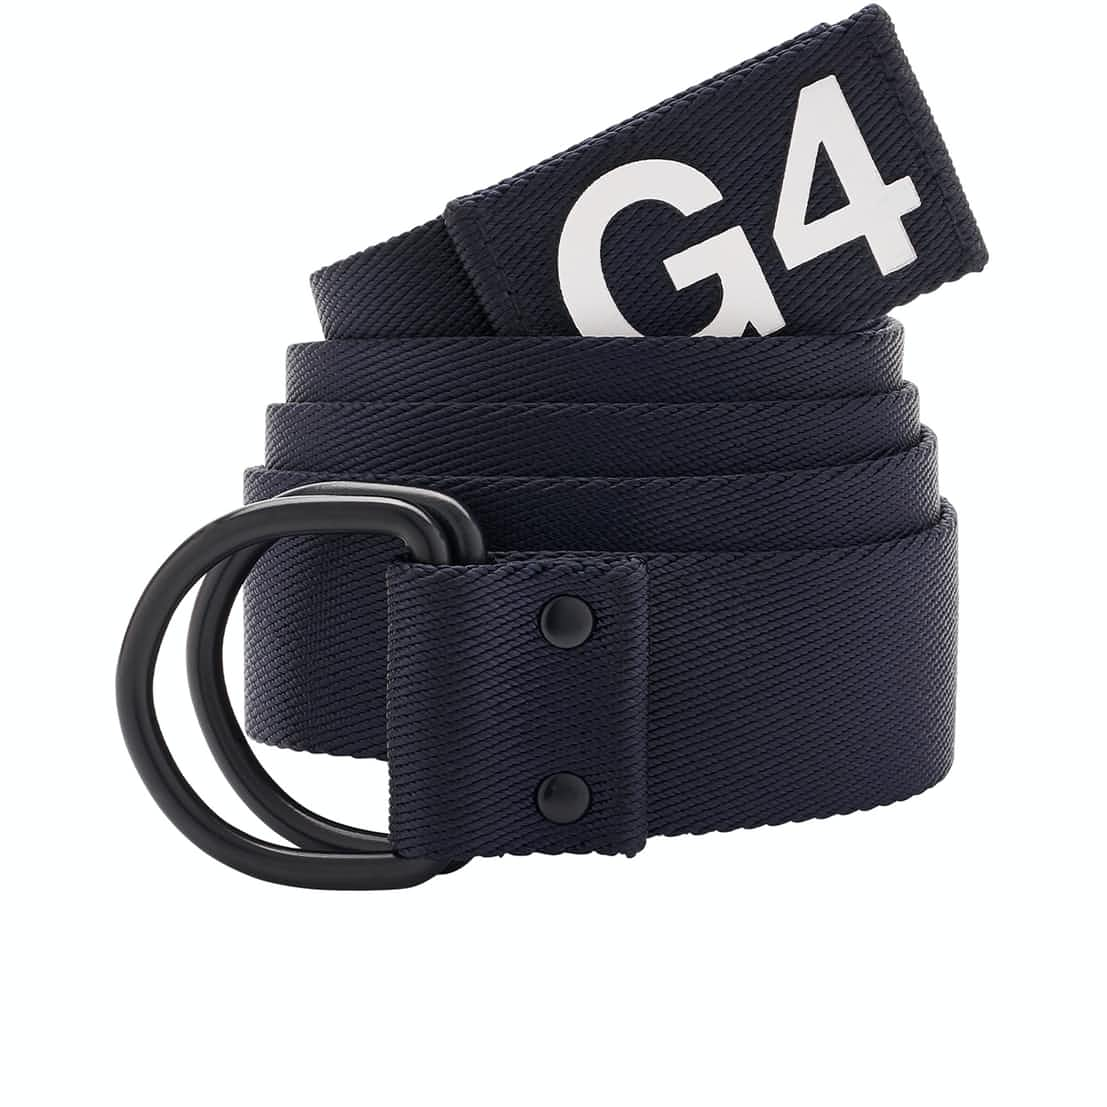 G4 Belt Twilight - AW19